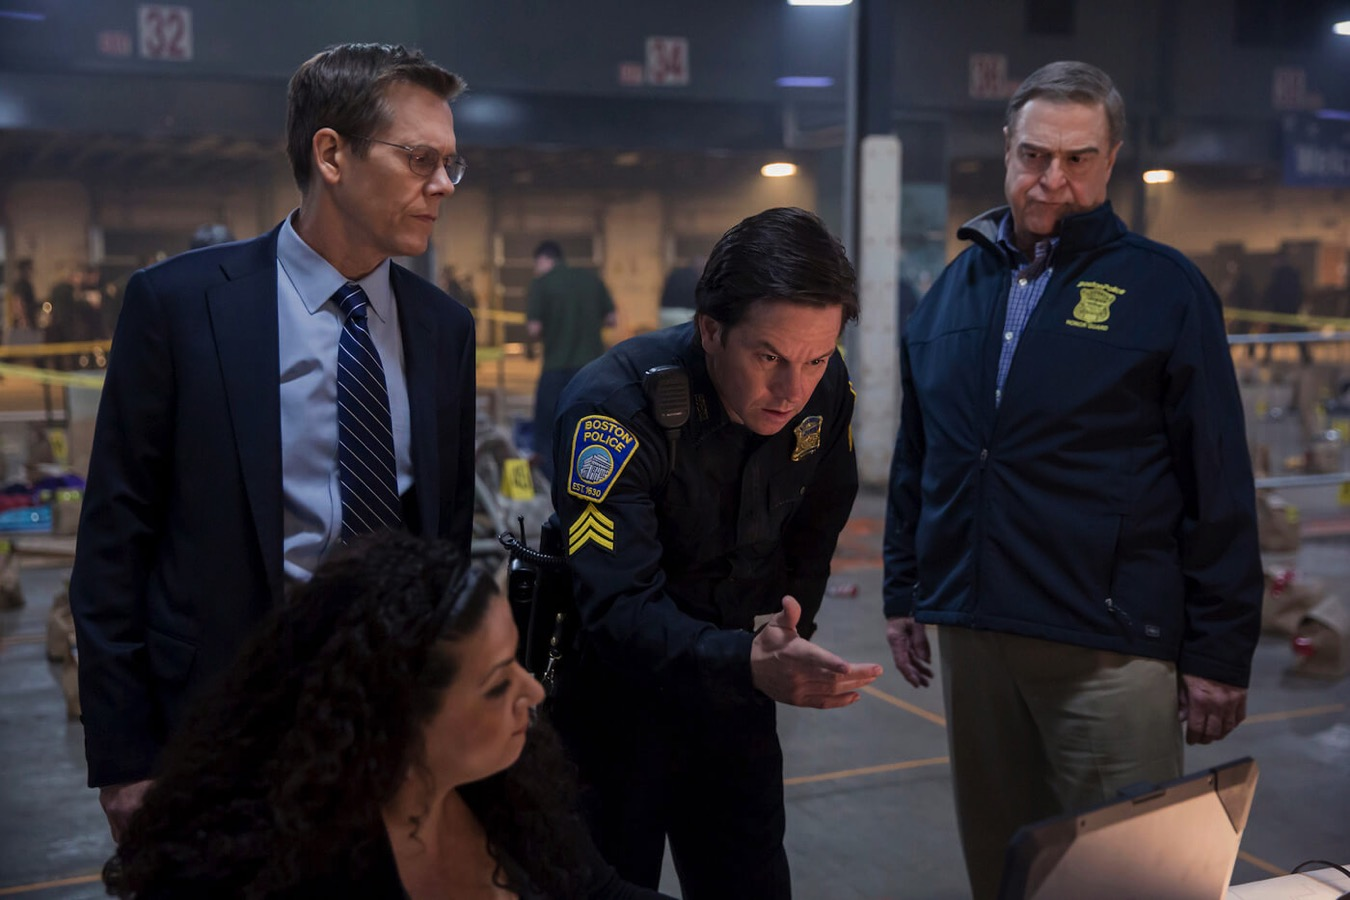 Patriots day mark wahlberg kevin bacon john goodman